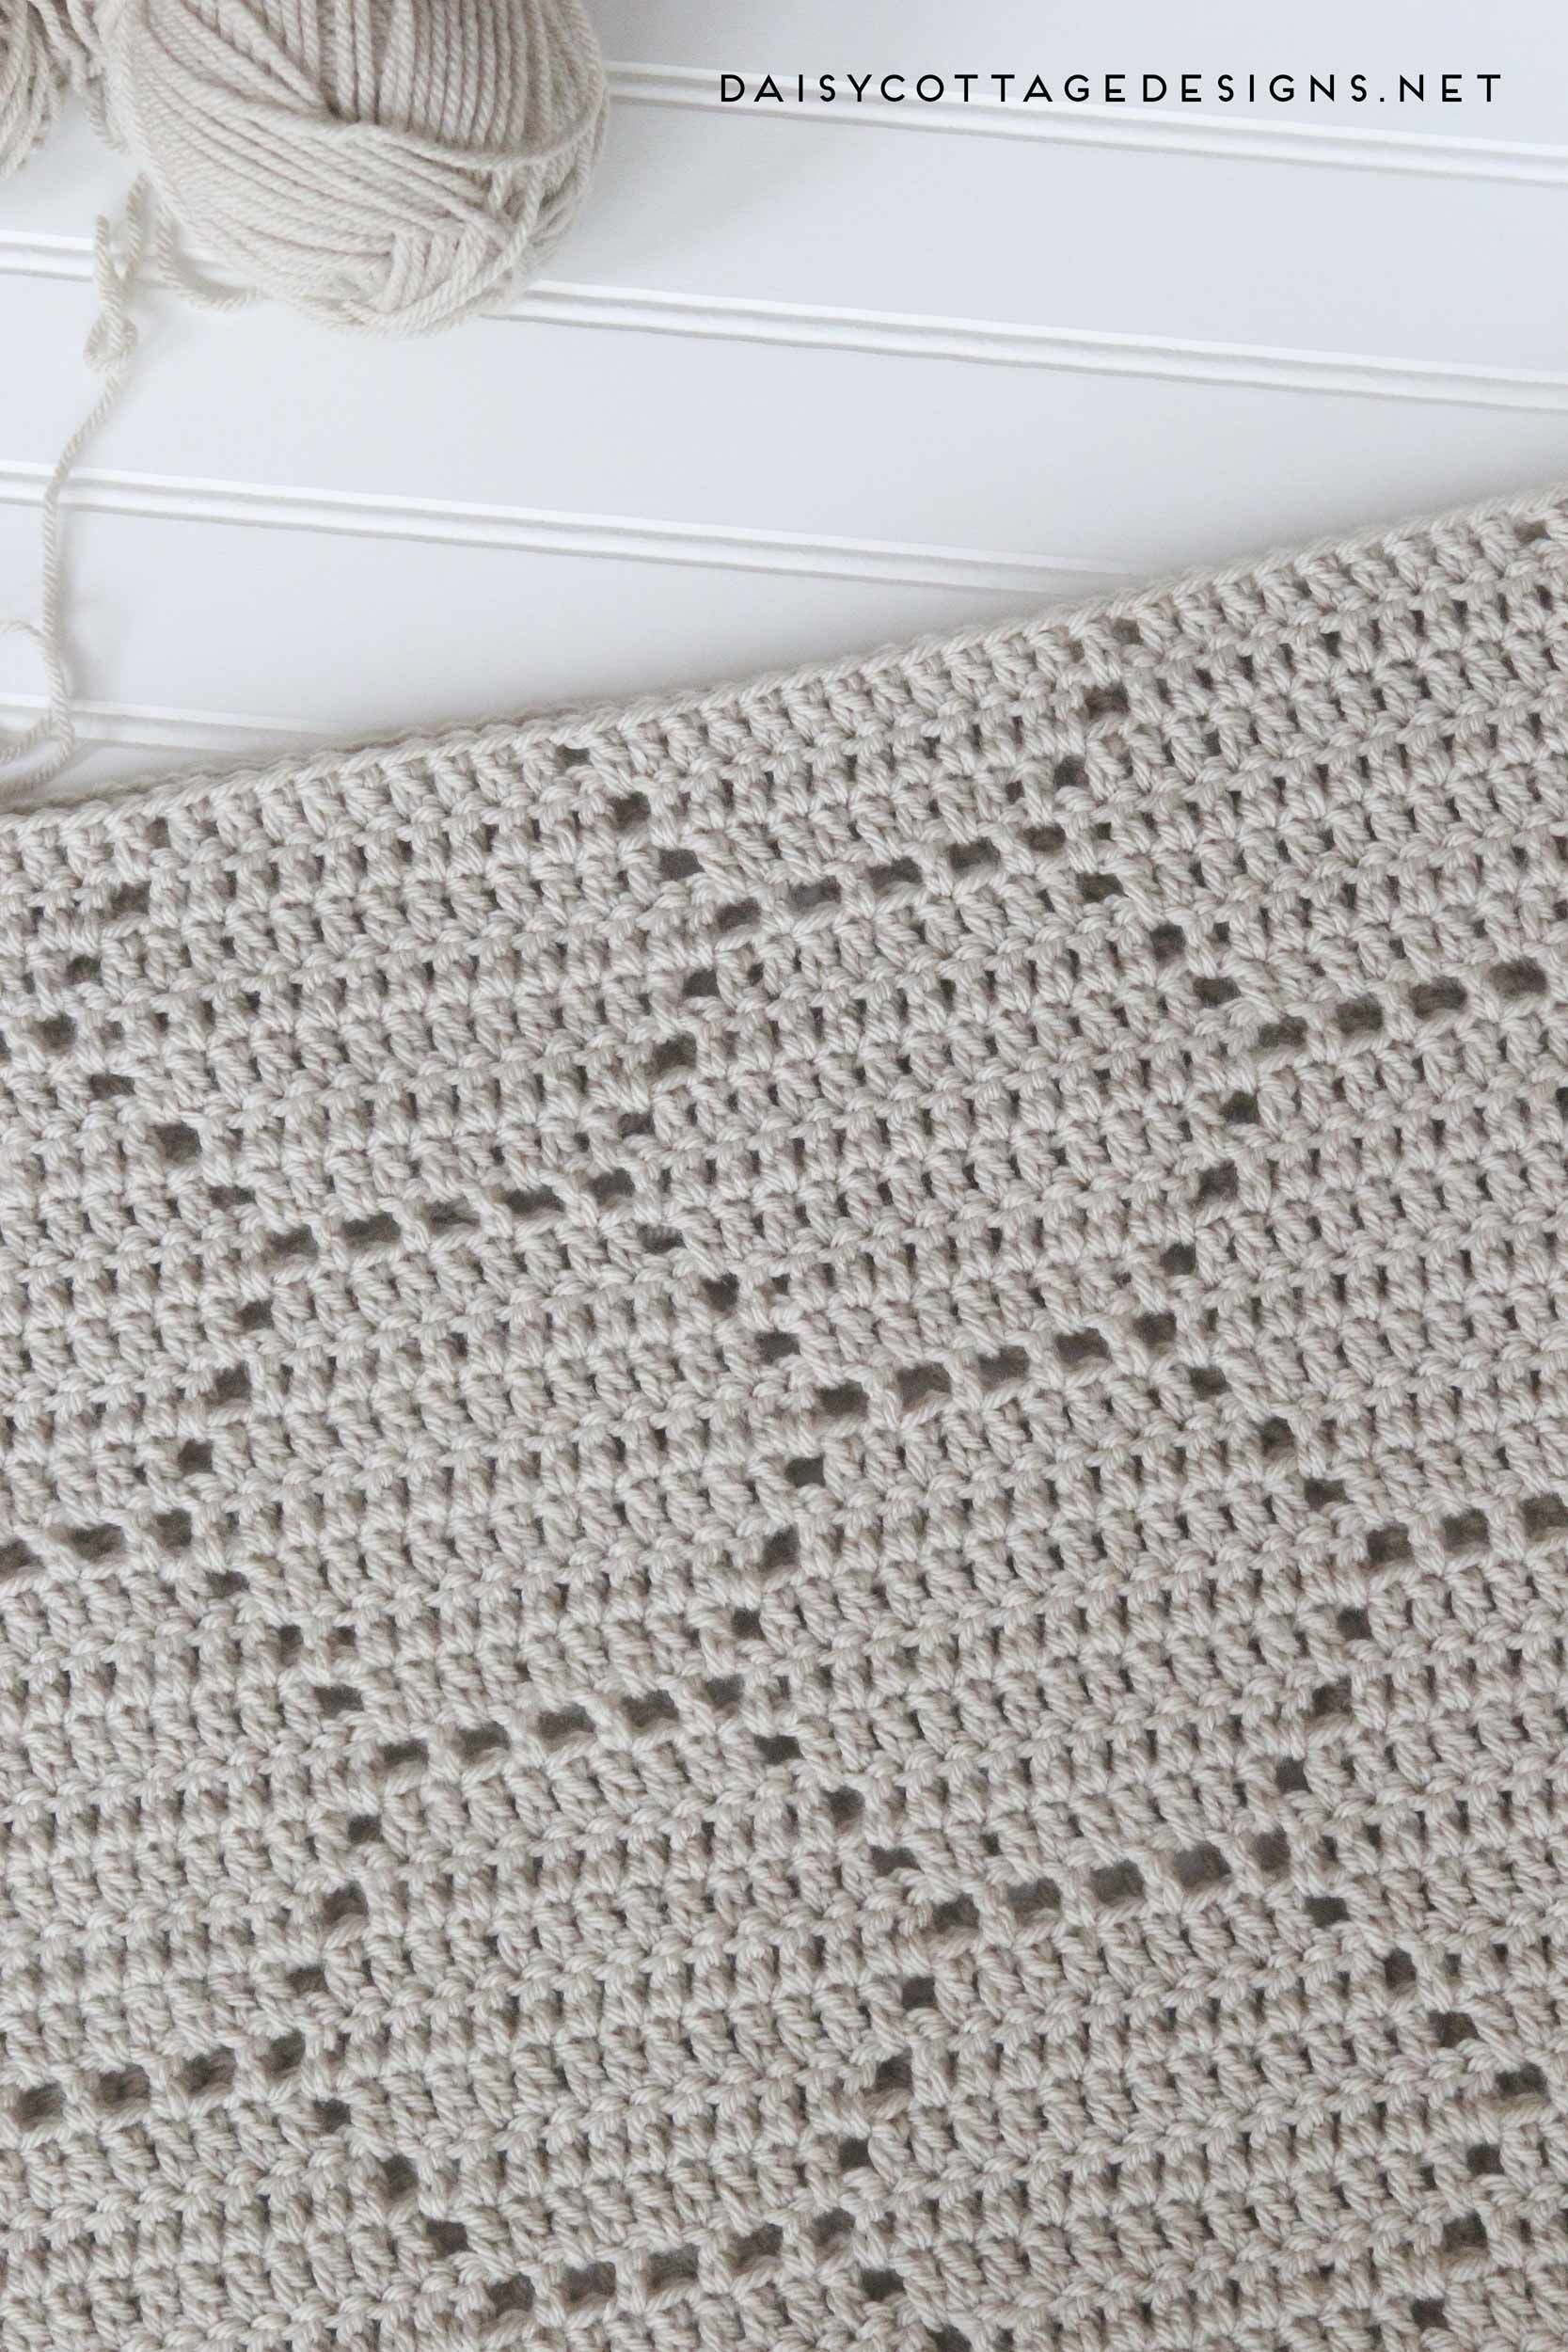 Use this filet crochet pattern to create a beautiful honeycomb ...